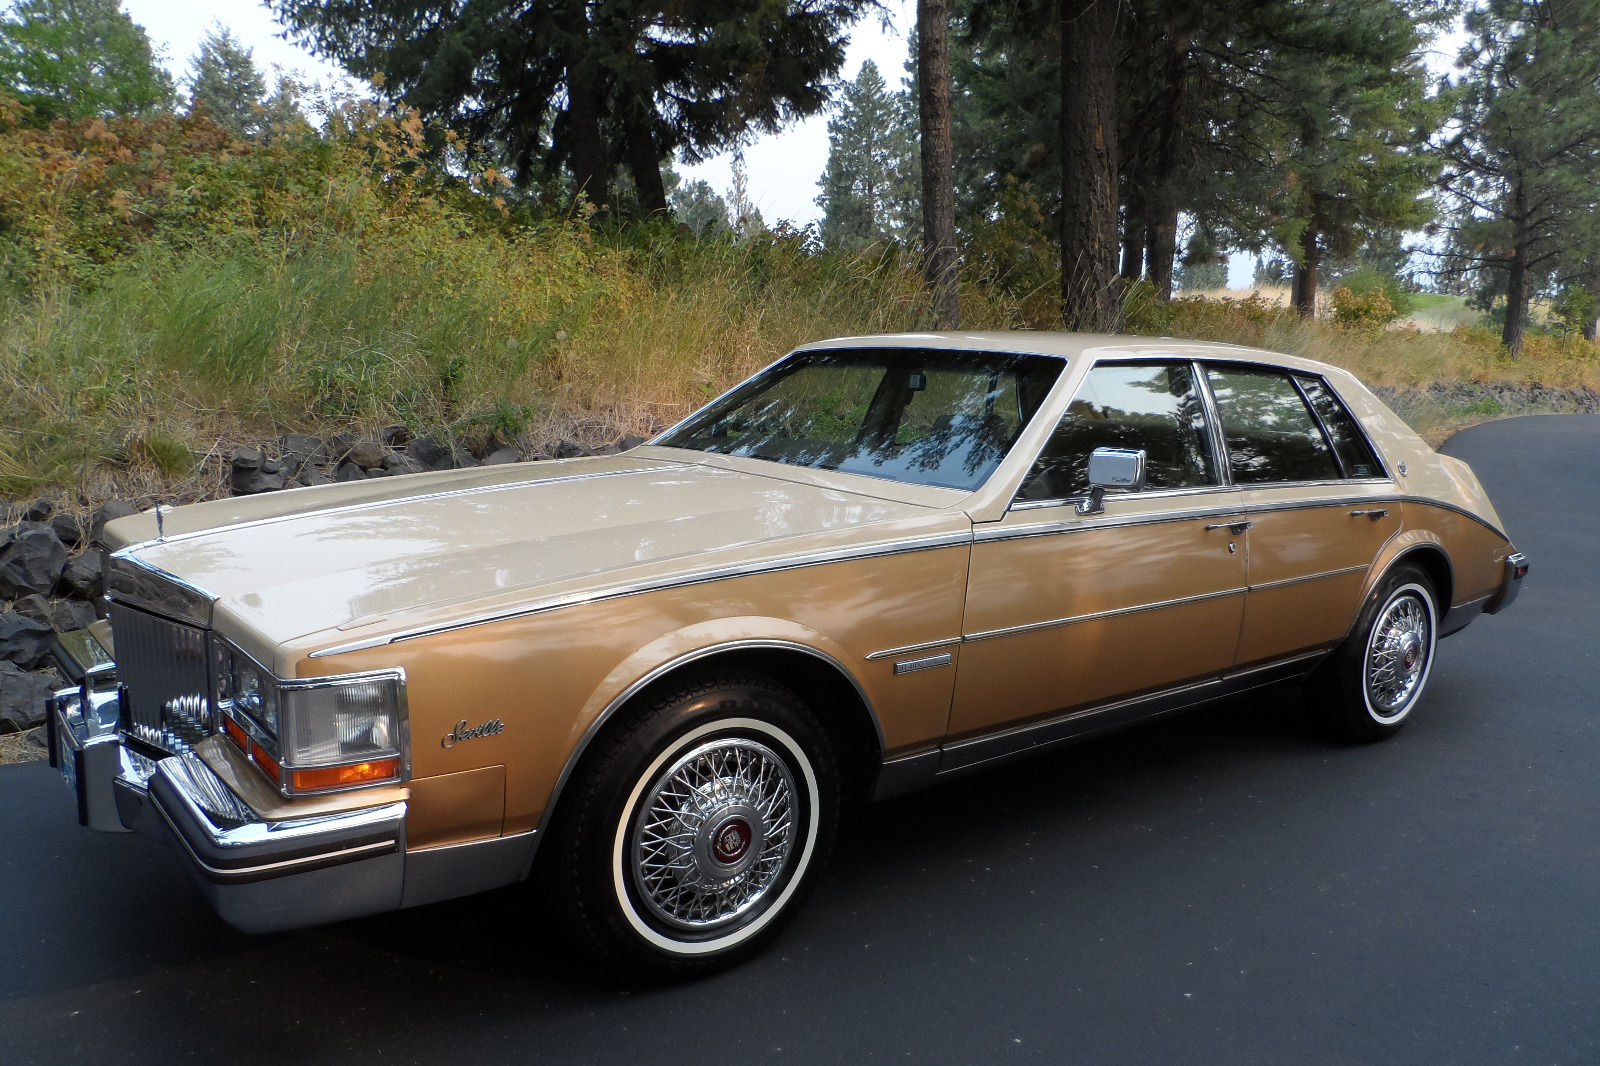 Original Condition Cadillac Seville Only Miles For Sale on 1982 Cadillac Fleetwood Interior